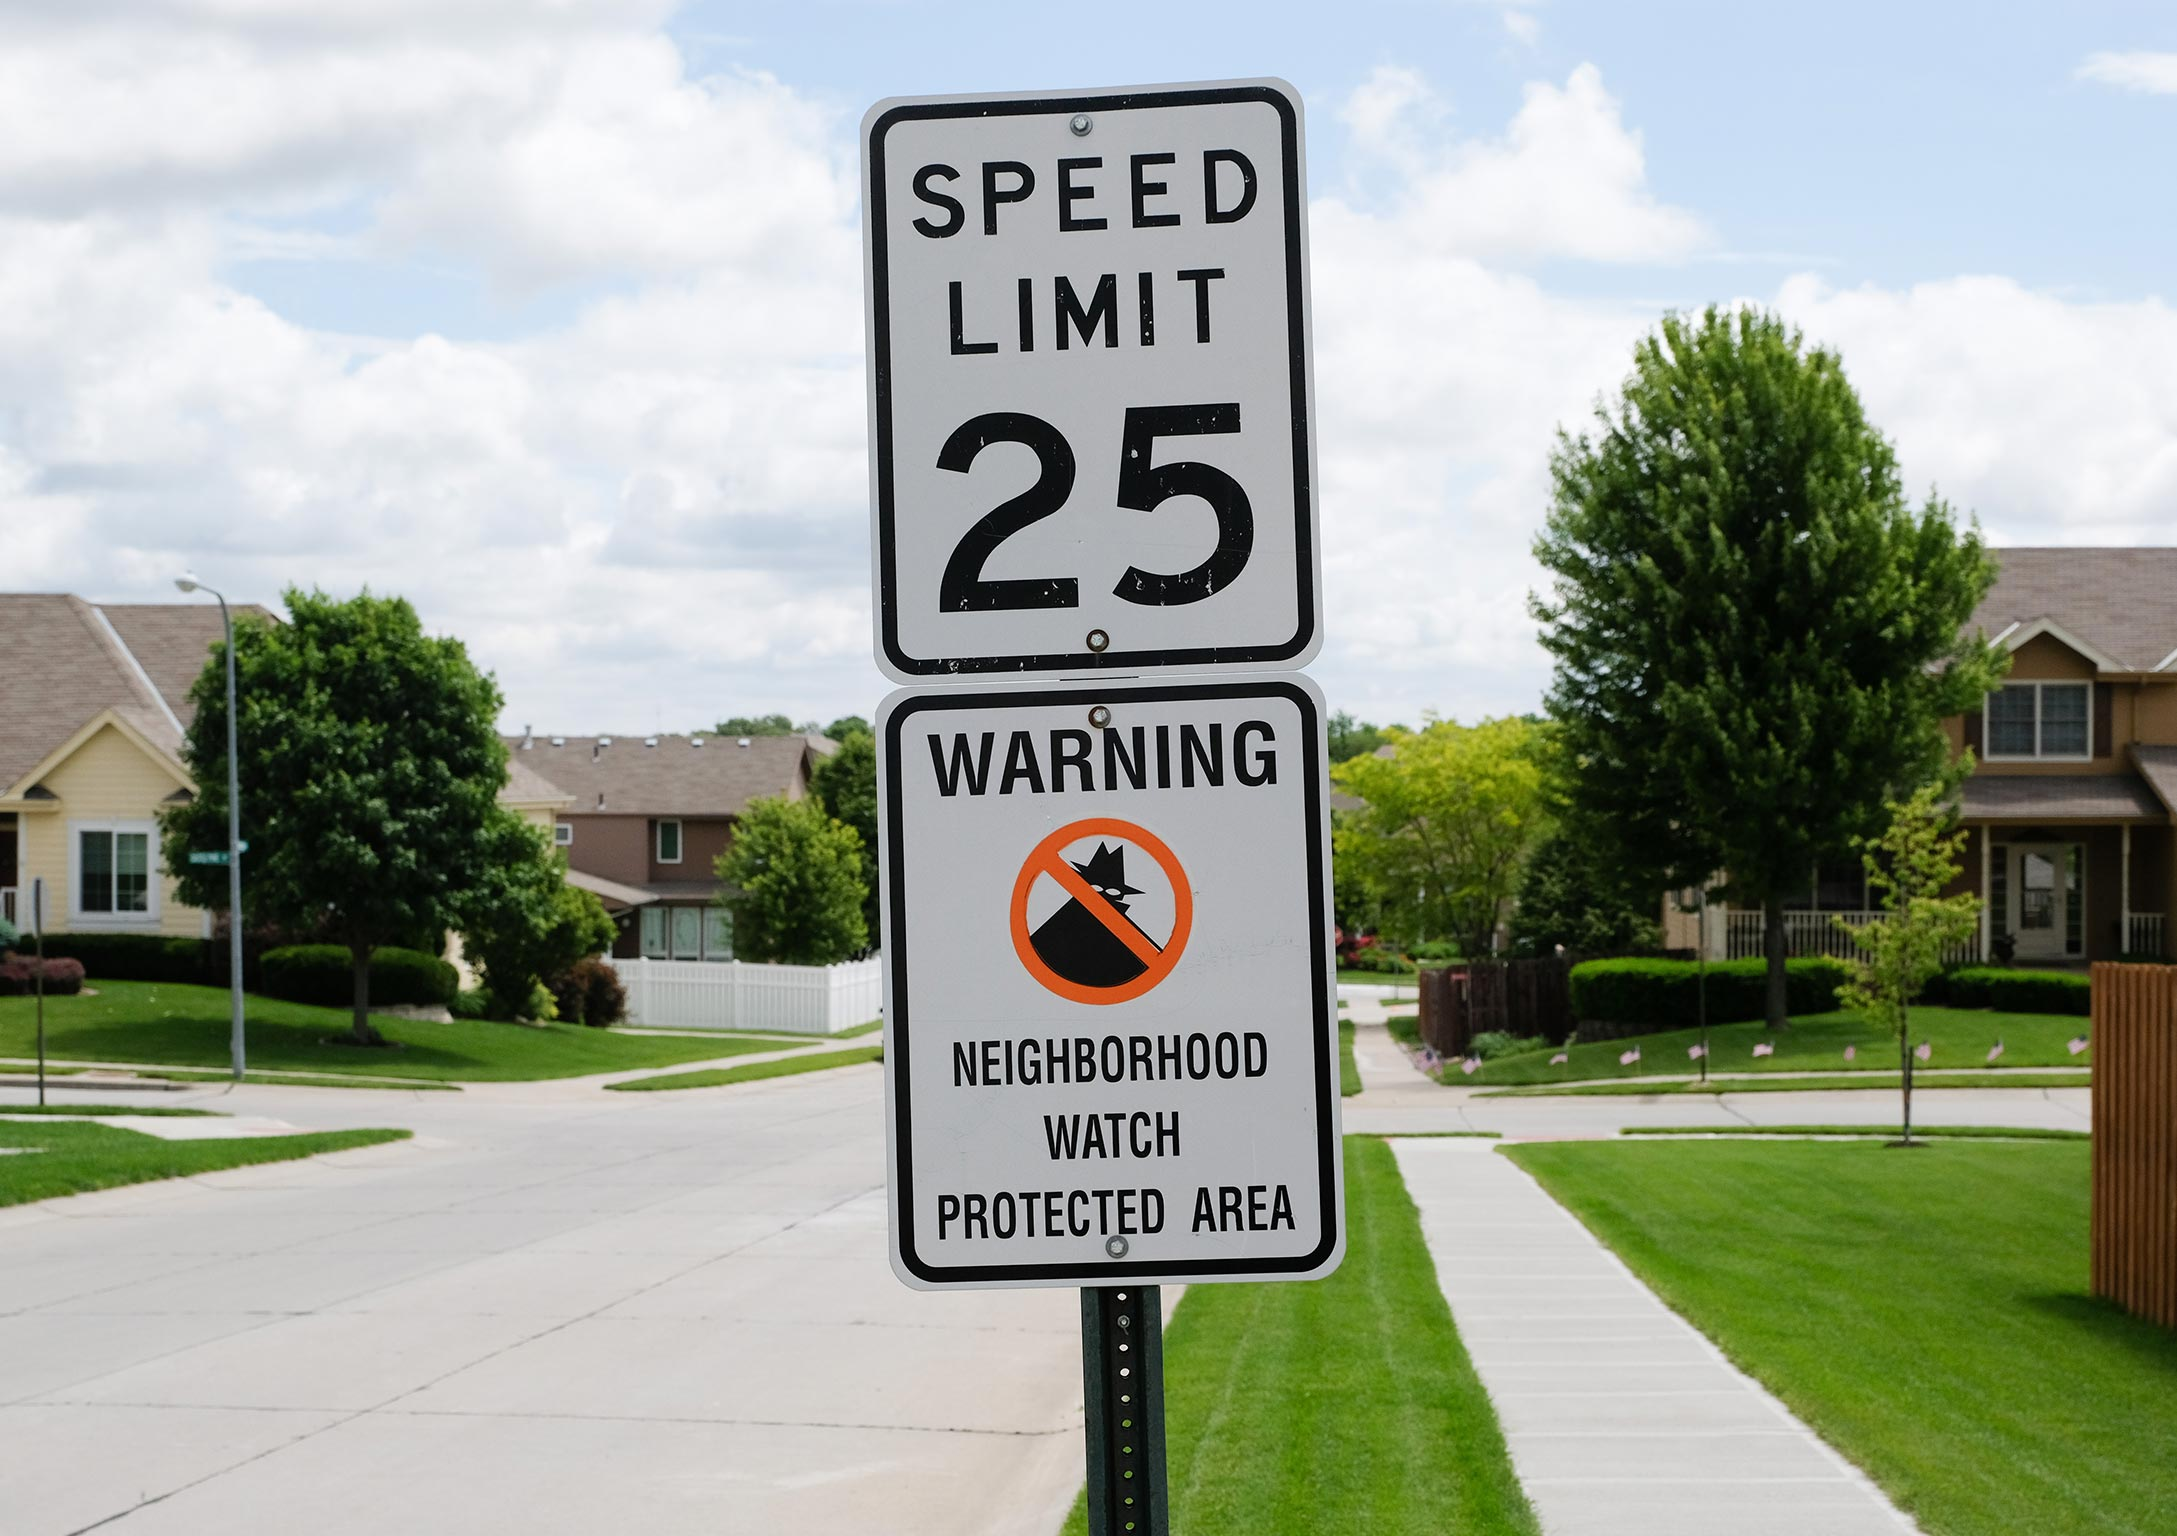 Speed limit and neighborhood watch sign on a pole